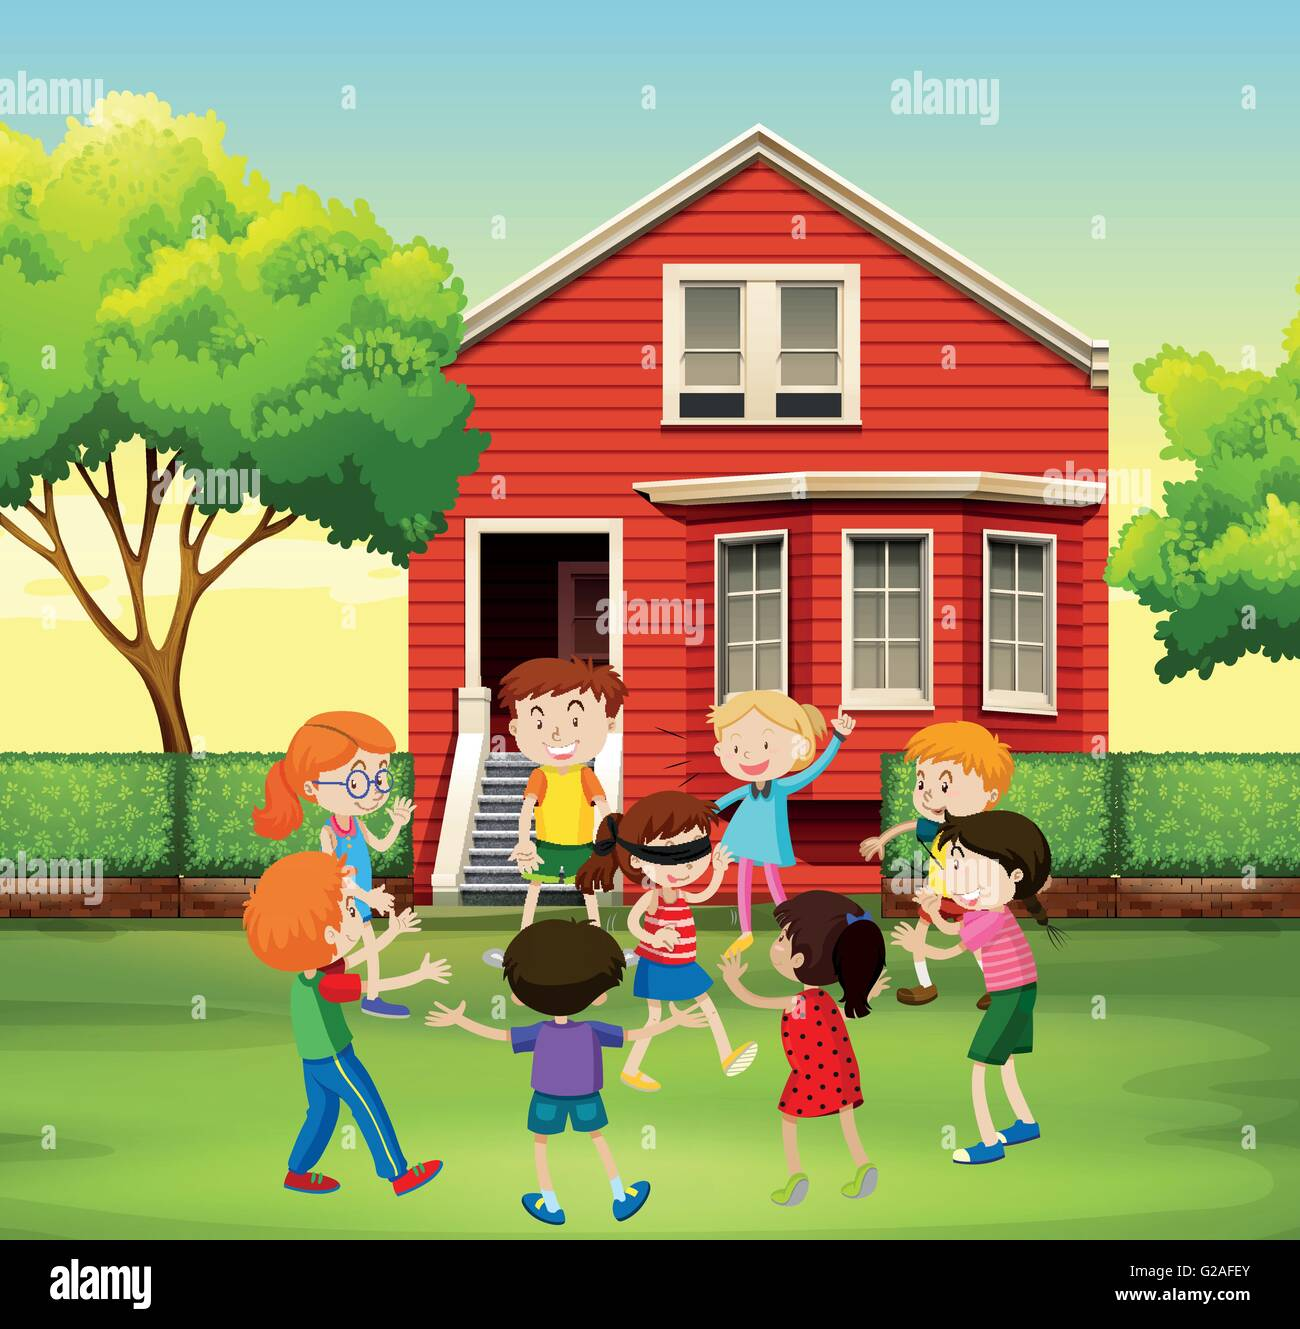 children playing game in the yard illustration stock vector art